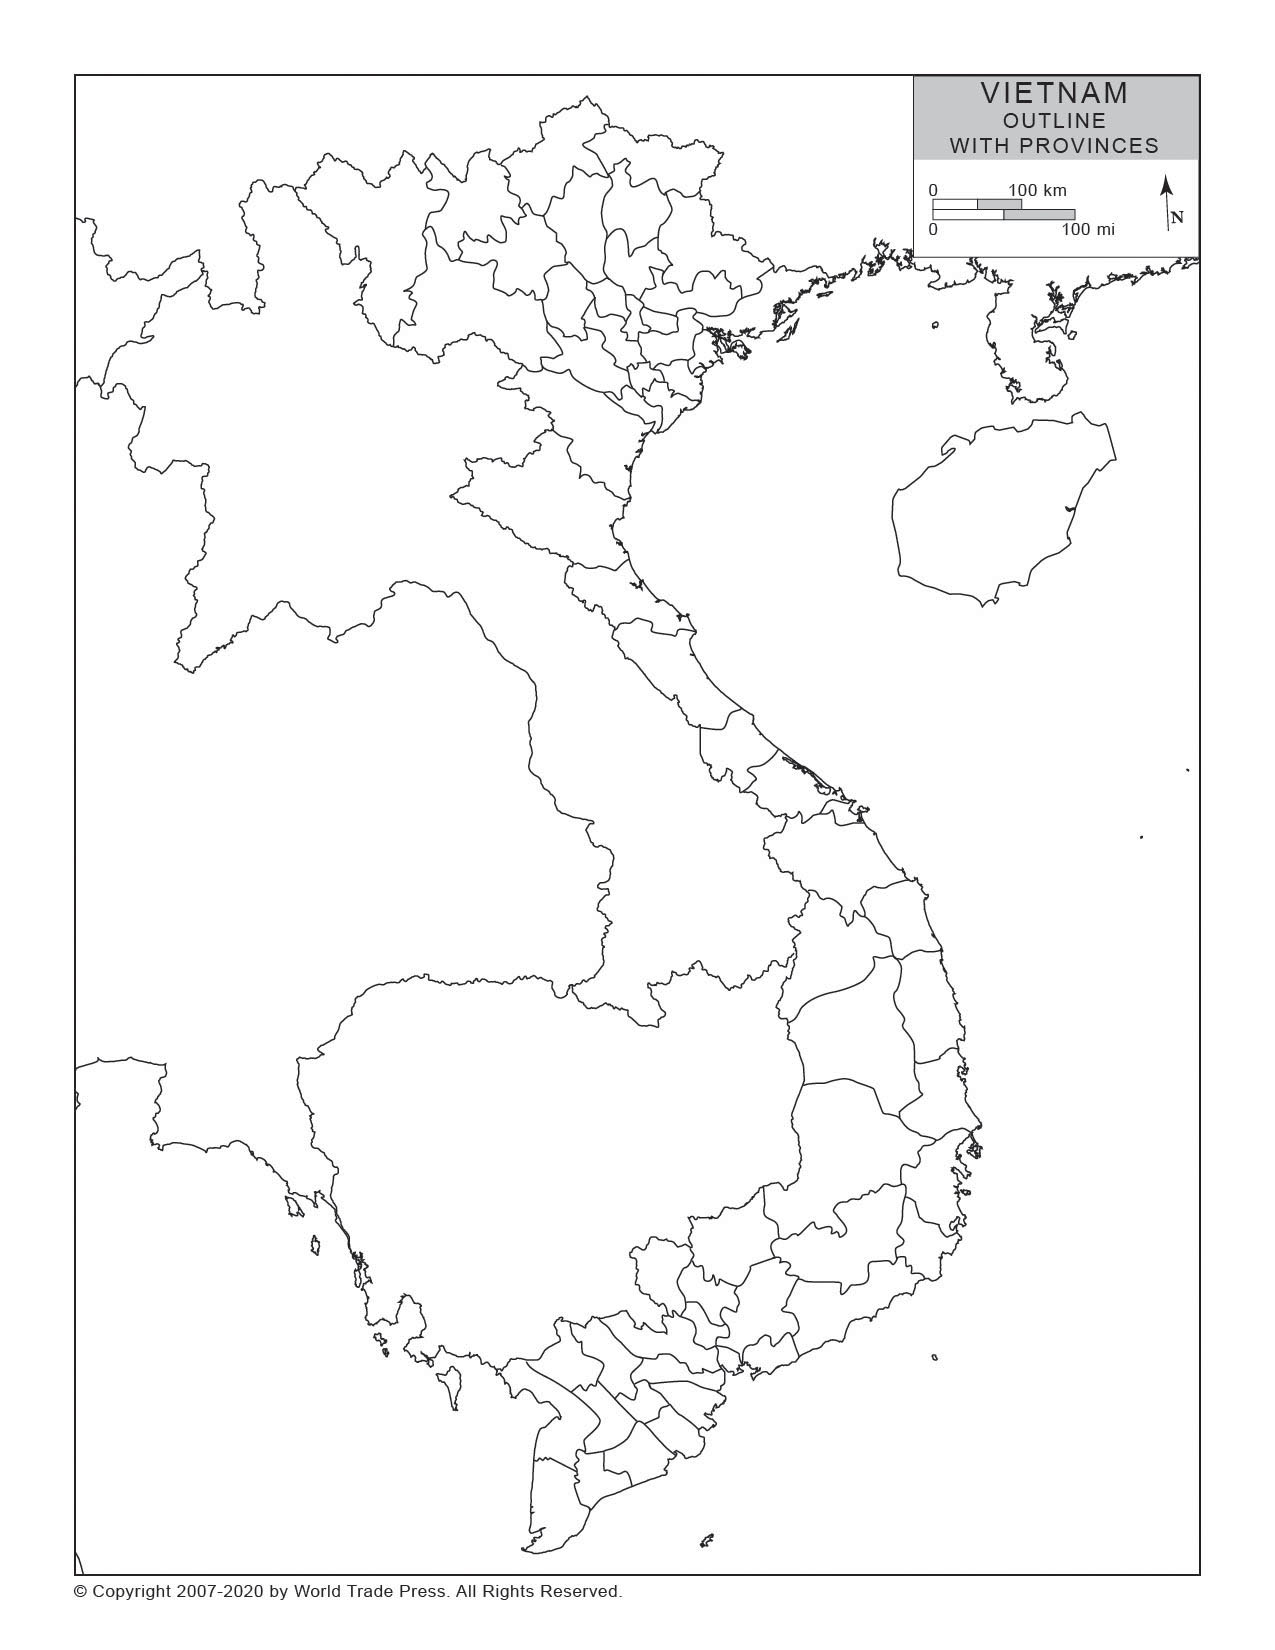 Outline with Provinces Map